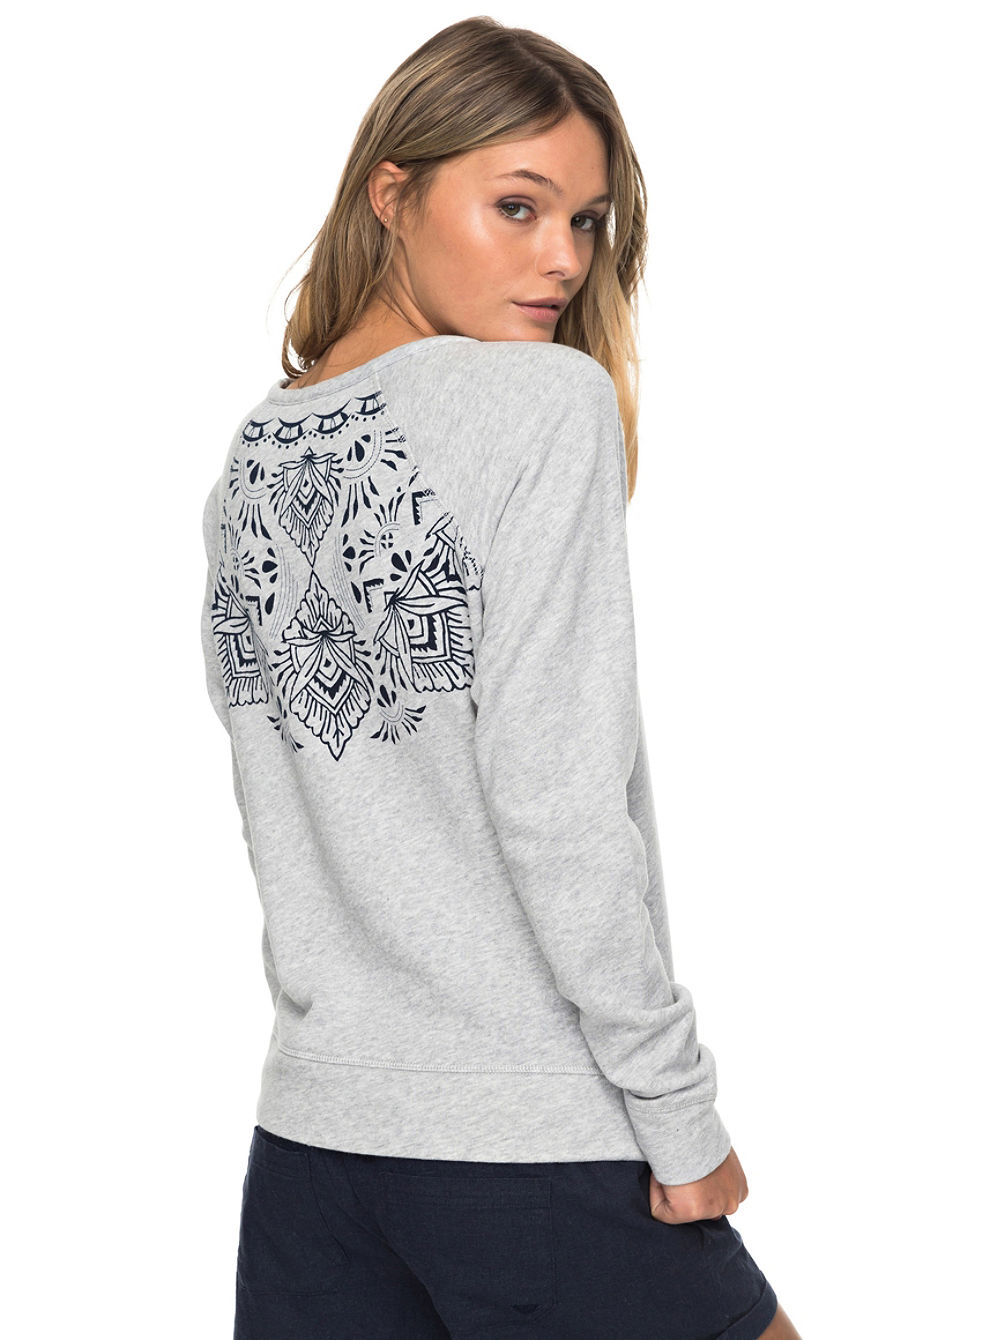 Shd Never Let It Go Sweater